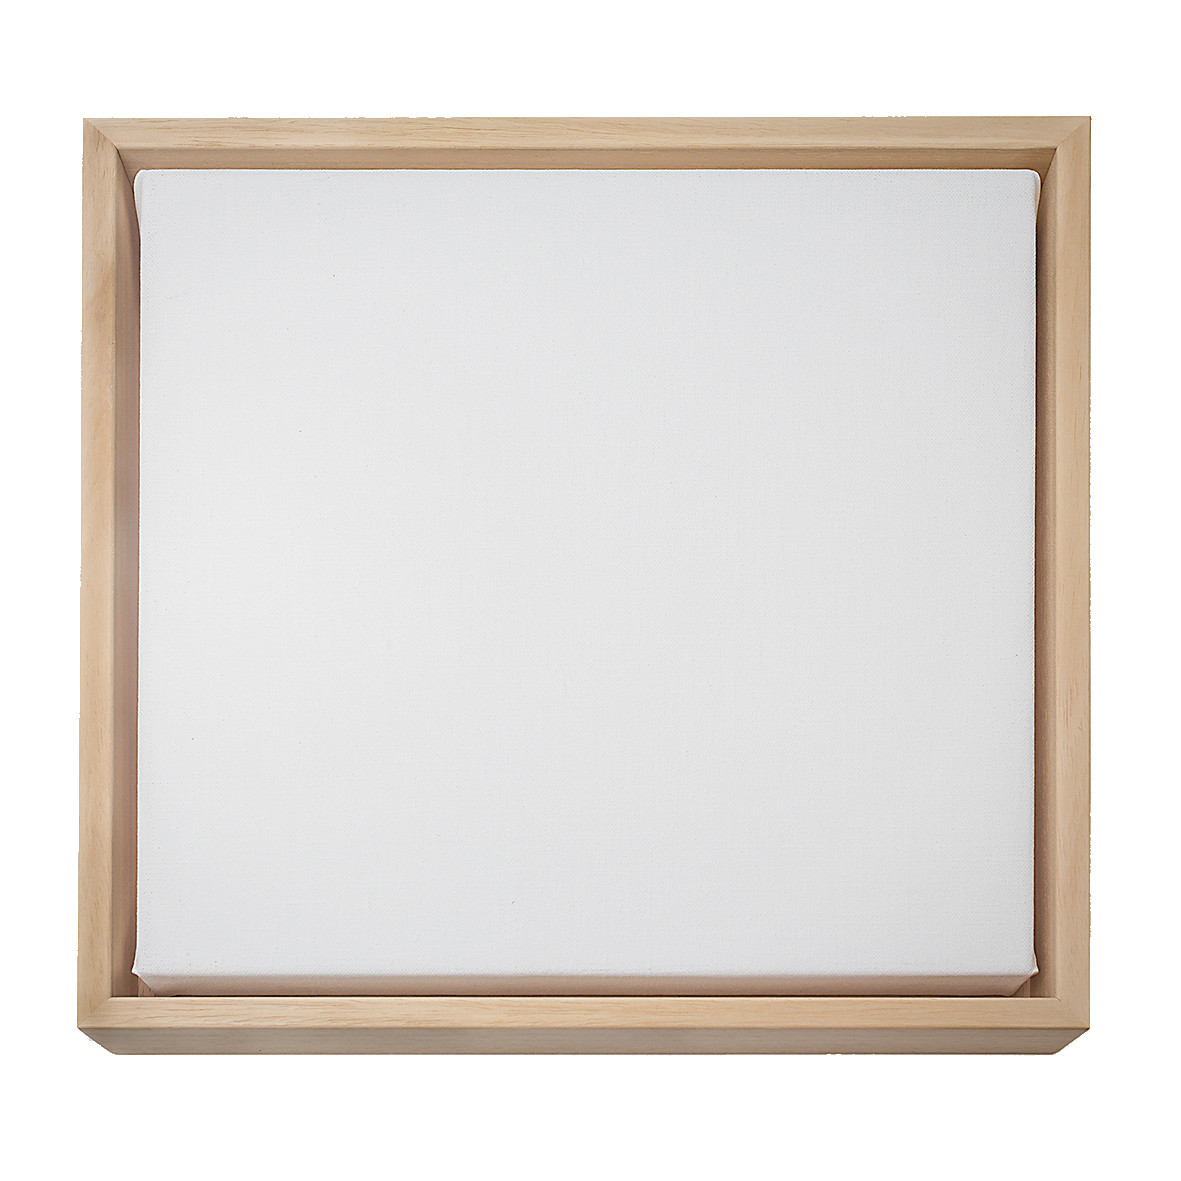 Stretched Canvas & Frame Sets 54mm